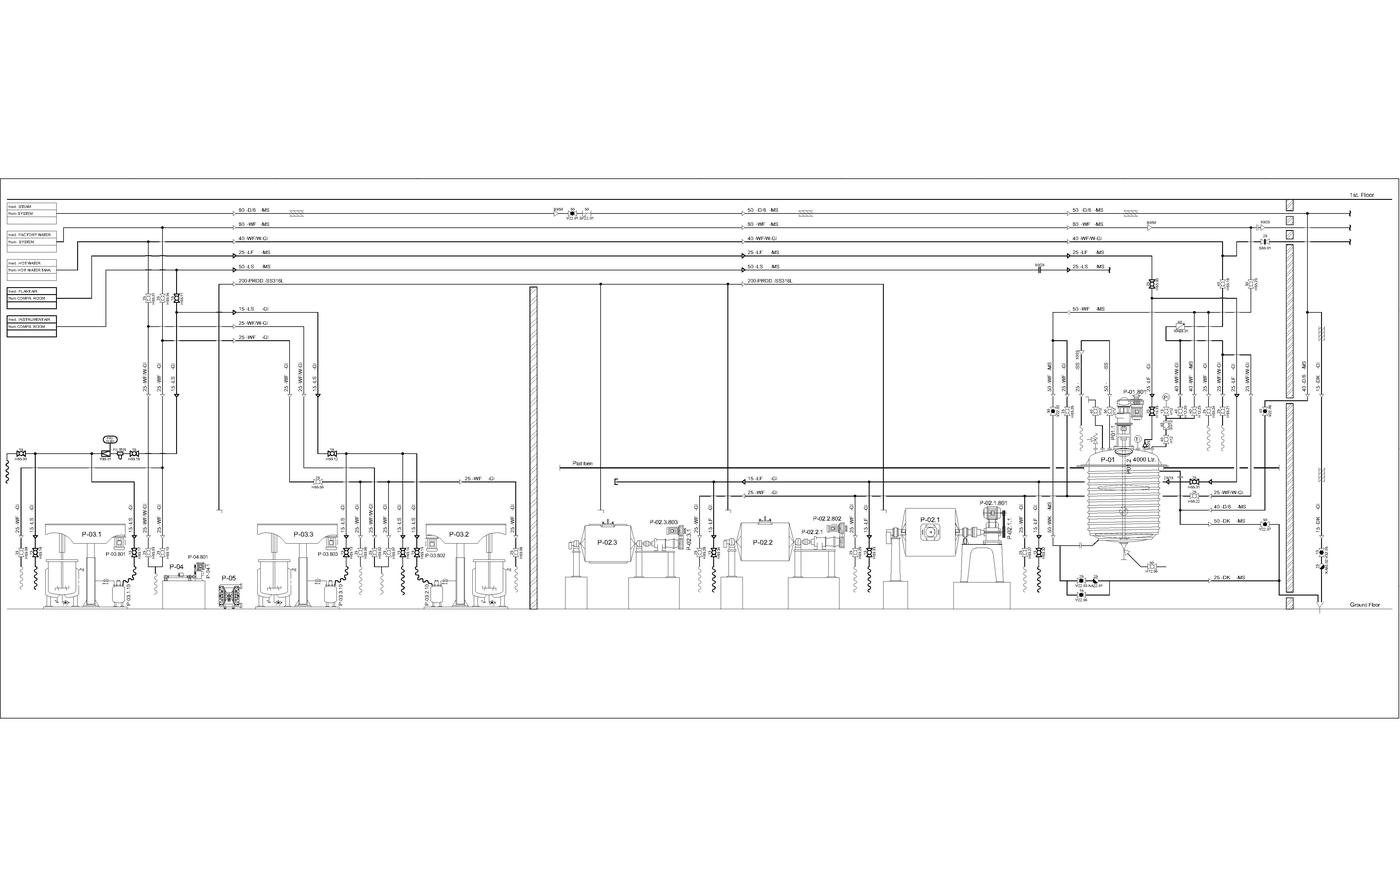 Chemical Process Diagrames By Mohammed Asim Baig At